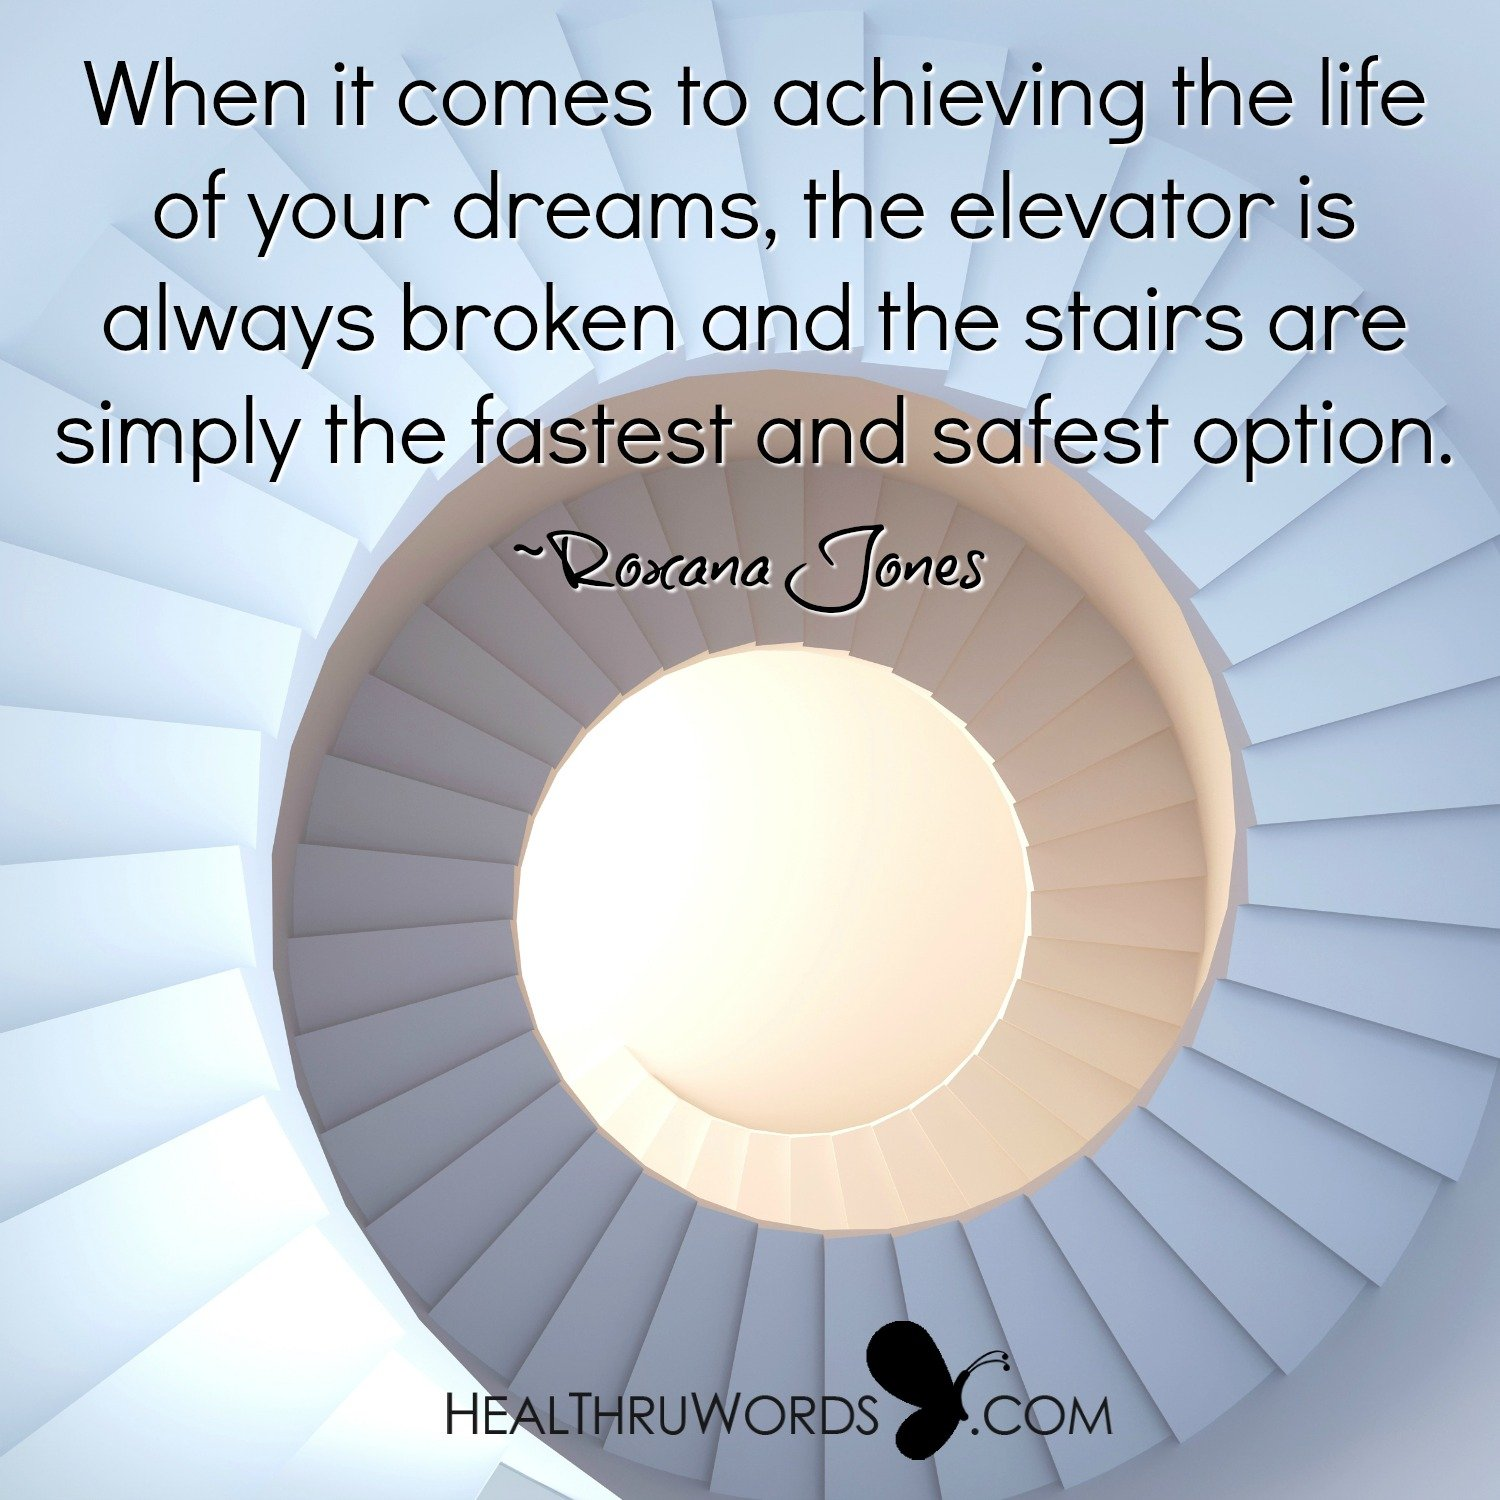 stairway to success inspirational images and quotes